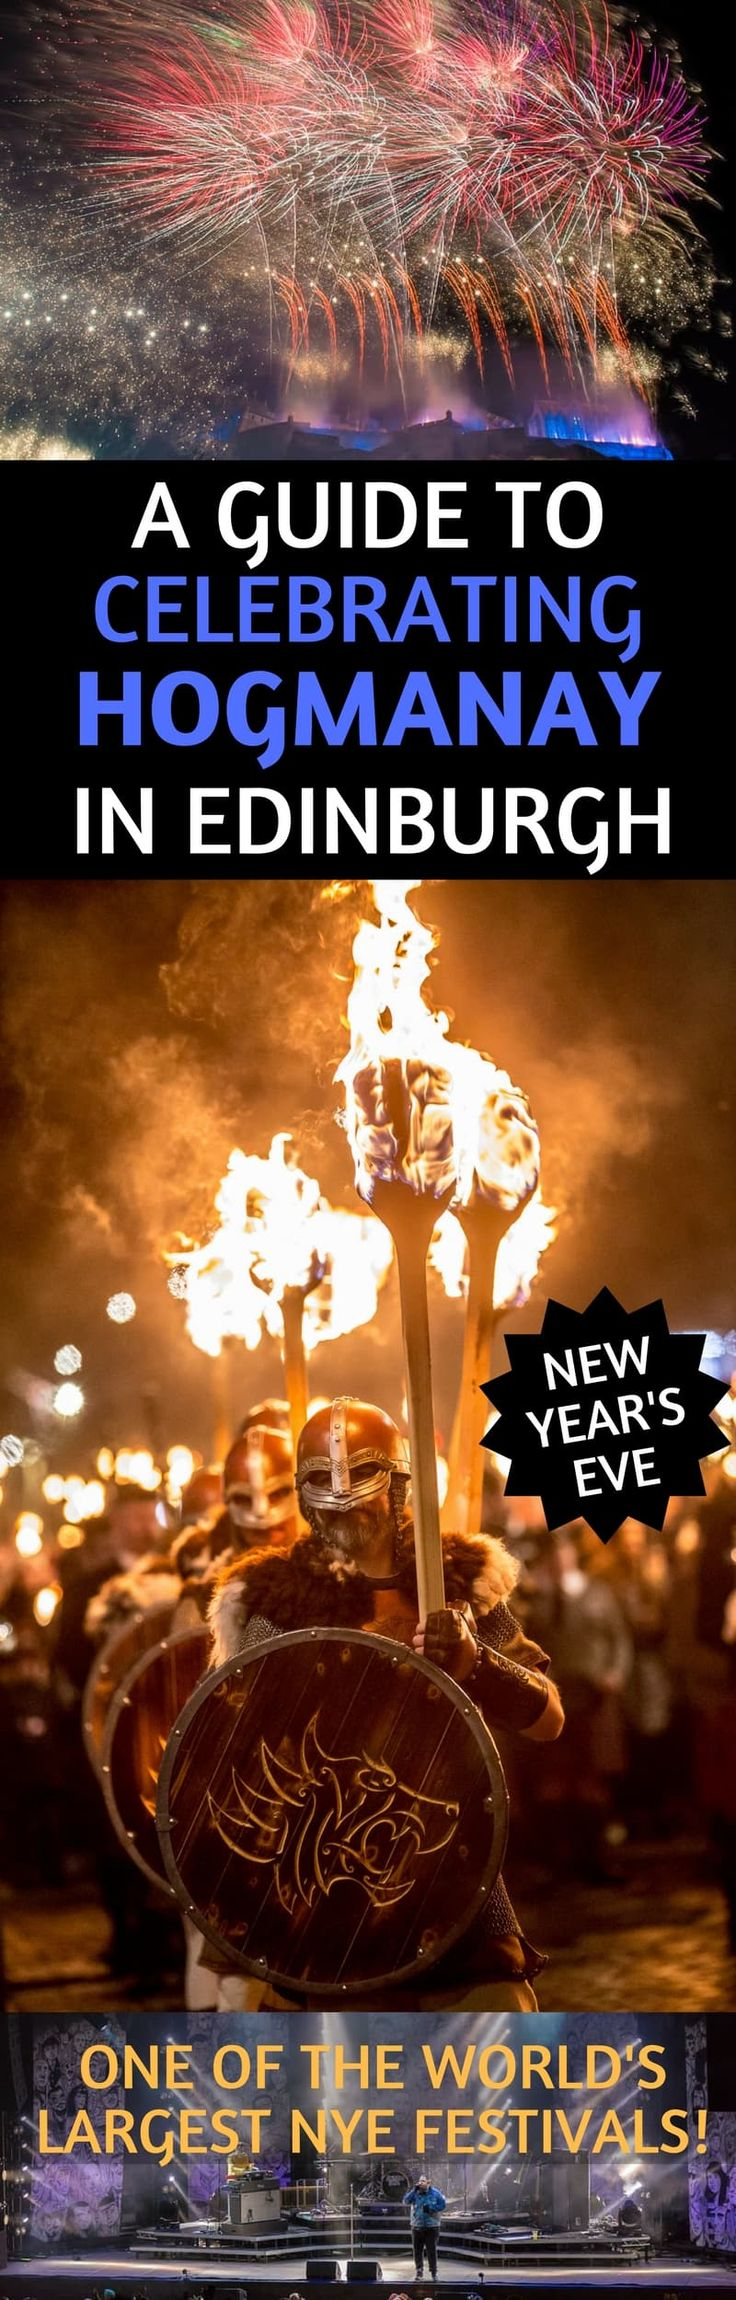 A guide to celebrating Hogmanay in Edinburgh Scotl…Edit description